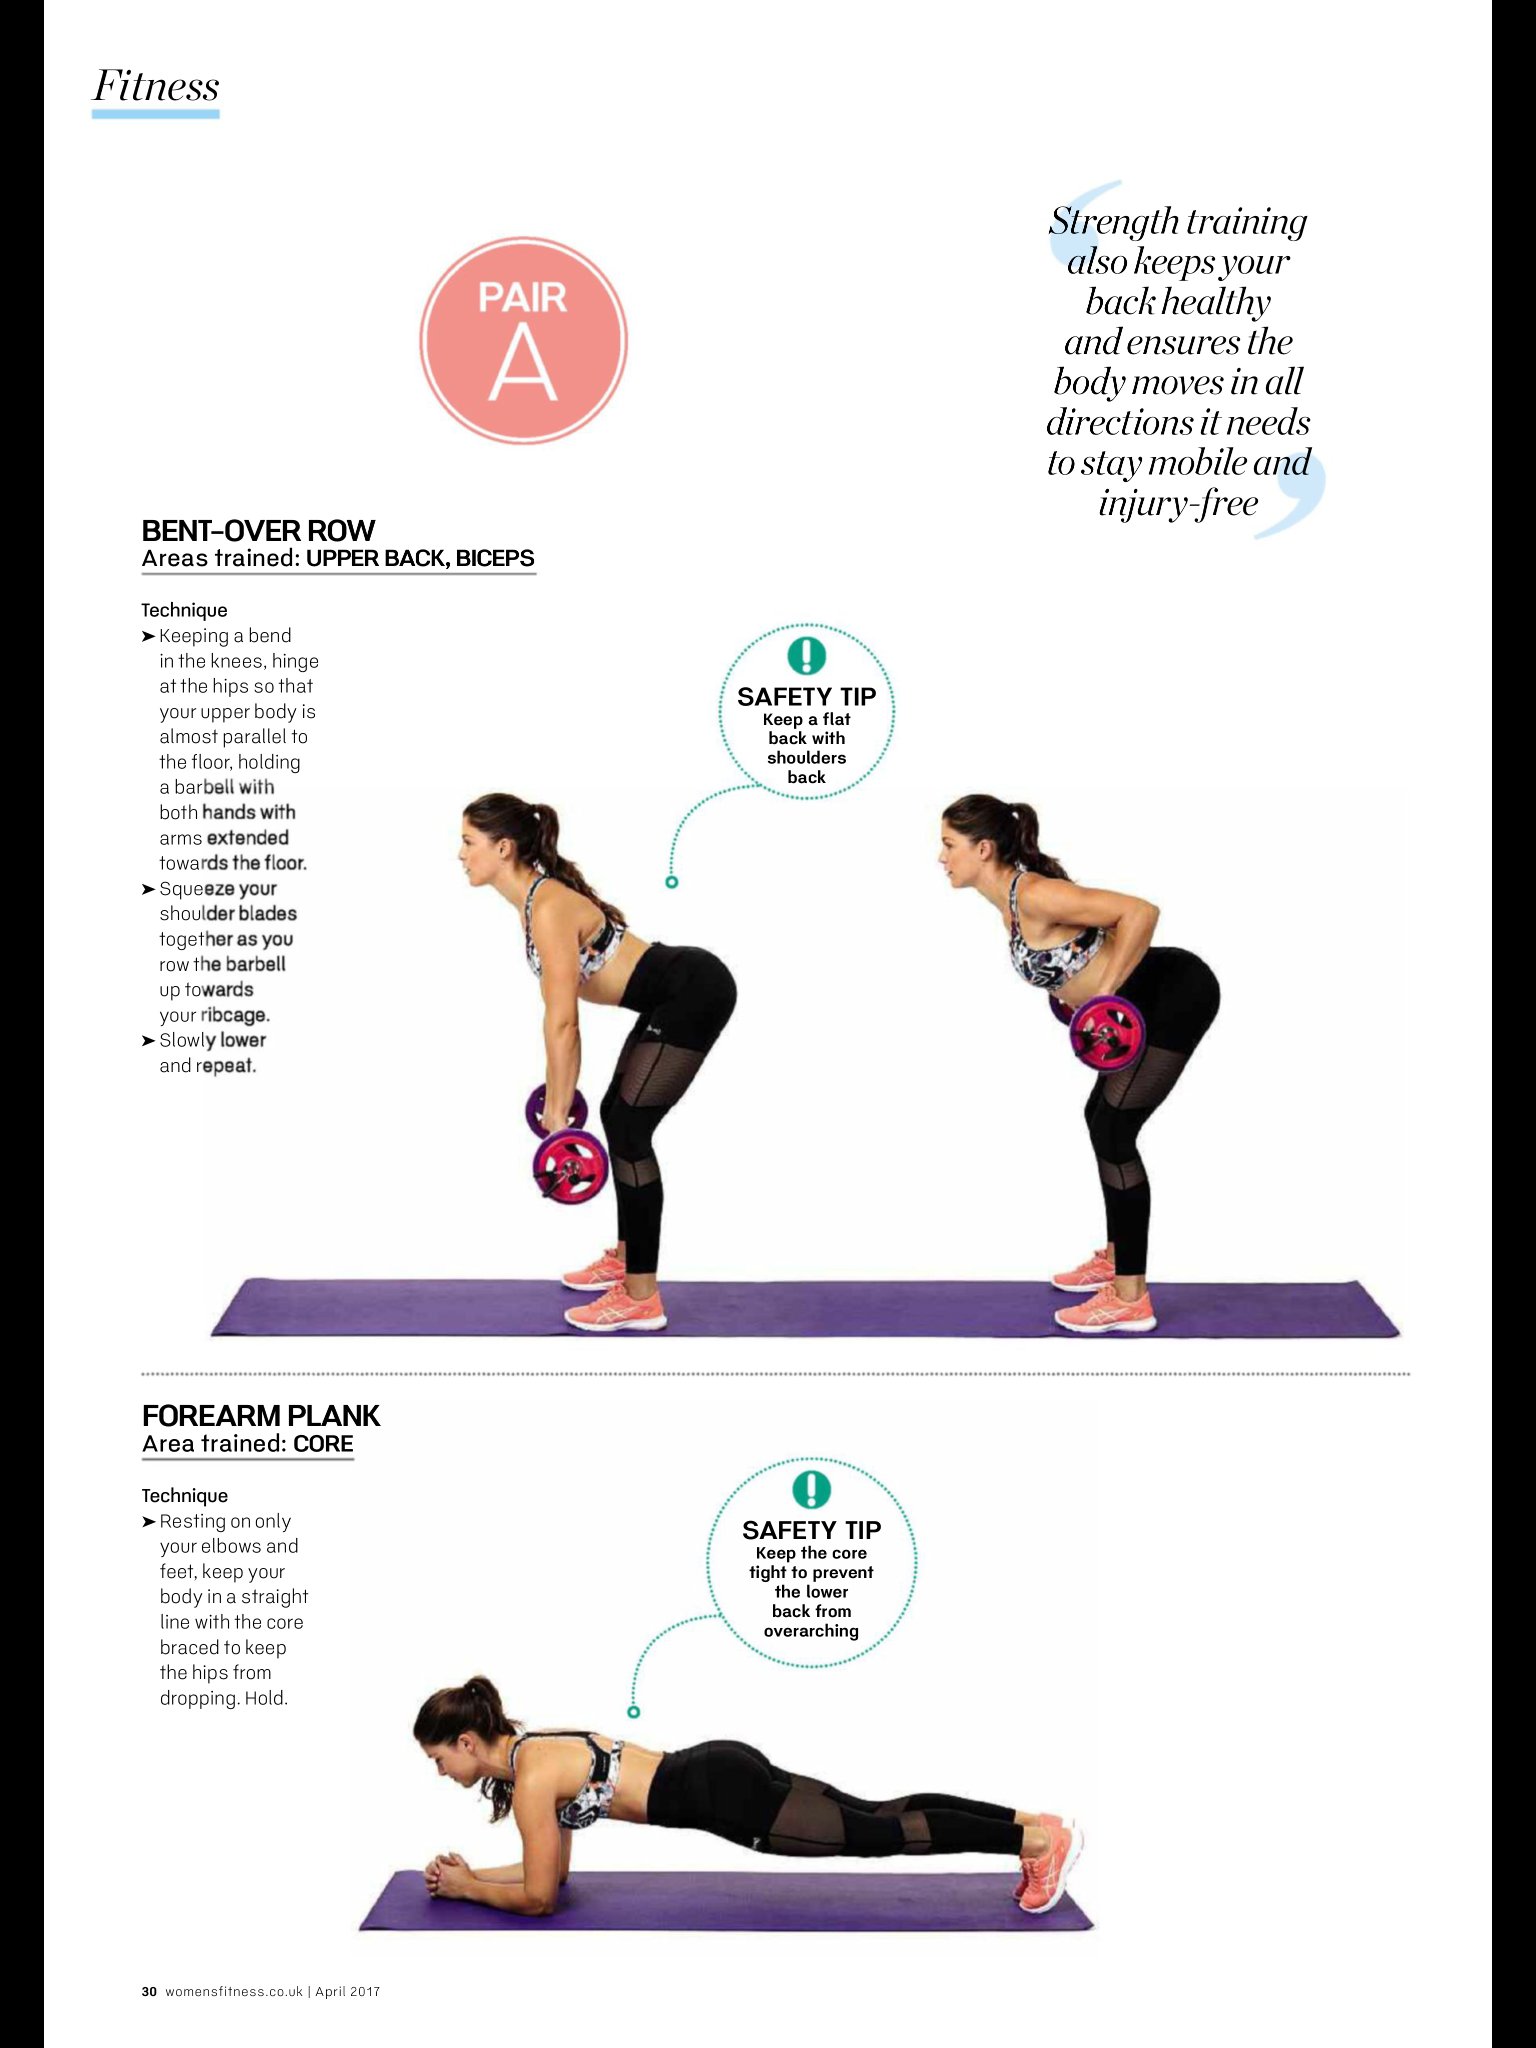 Pin by Jia Jia on Fitness & workouts Safety tips